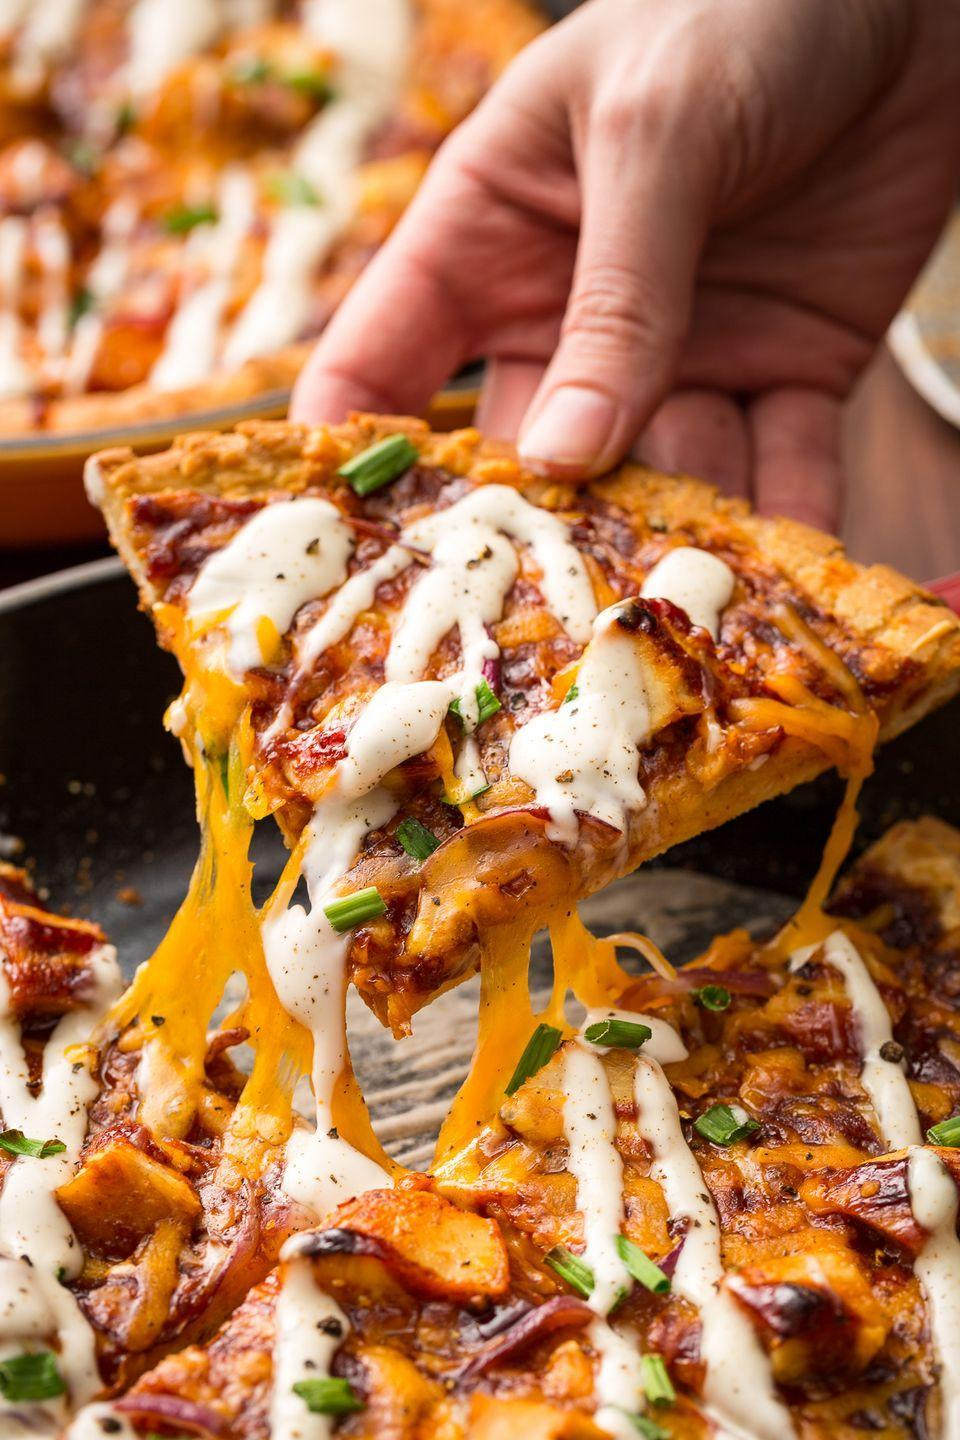 """<p>A slight differentiation of the classic and the skillet takes this dish to a whole new level. </p><p>Get the recipe from <a href=""""https://www.oprahdaily.com/cooking/recipe-ideas/recipes/a46838/bbq-chicken-skillet-pizza-recipe/"""" rel=""""nofollow noopener"""" target=""""_blank"""" data-ylk=""""slk:Delish"""" class=""""link rapid-noclick-resp"""">Delish</a>.</p>"""